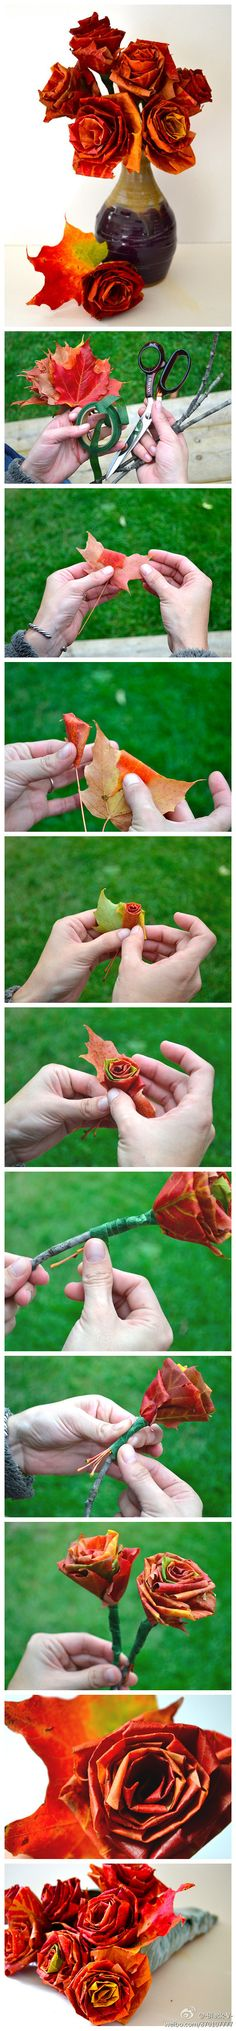 Roses from Maple leaves!